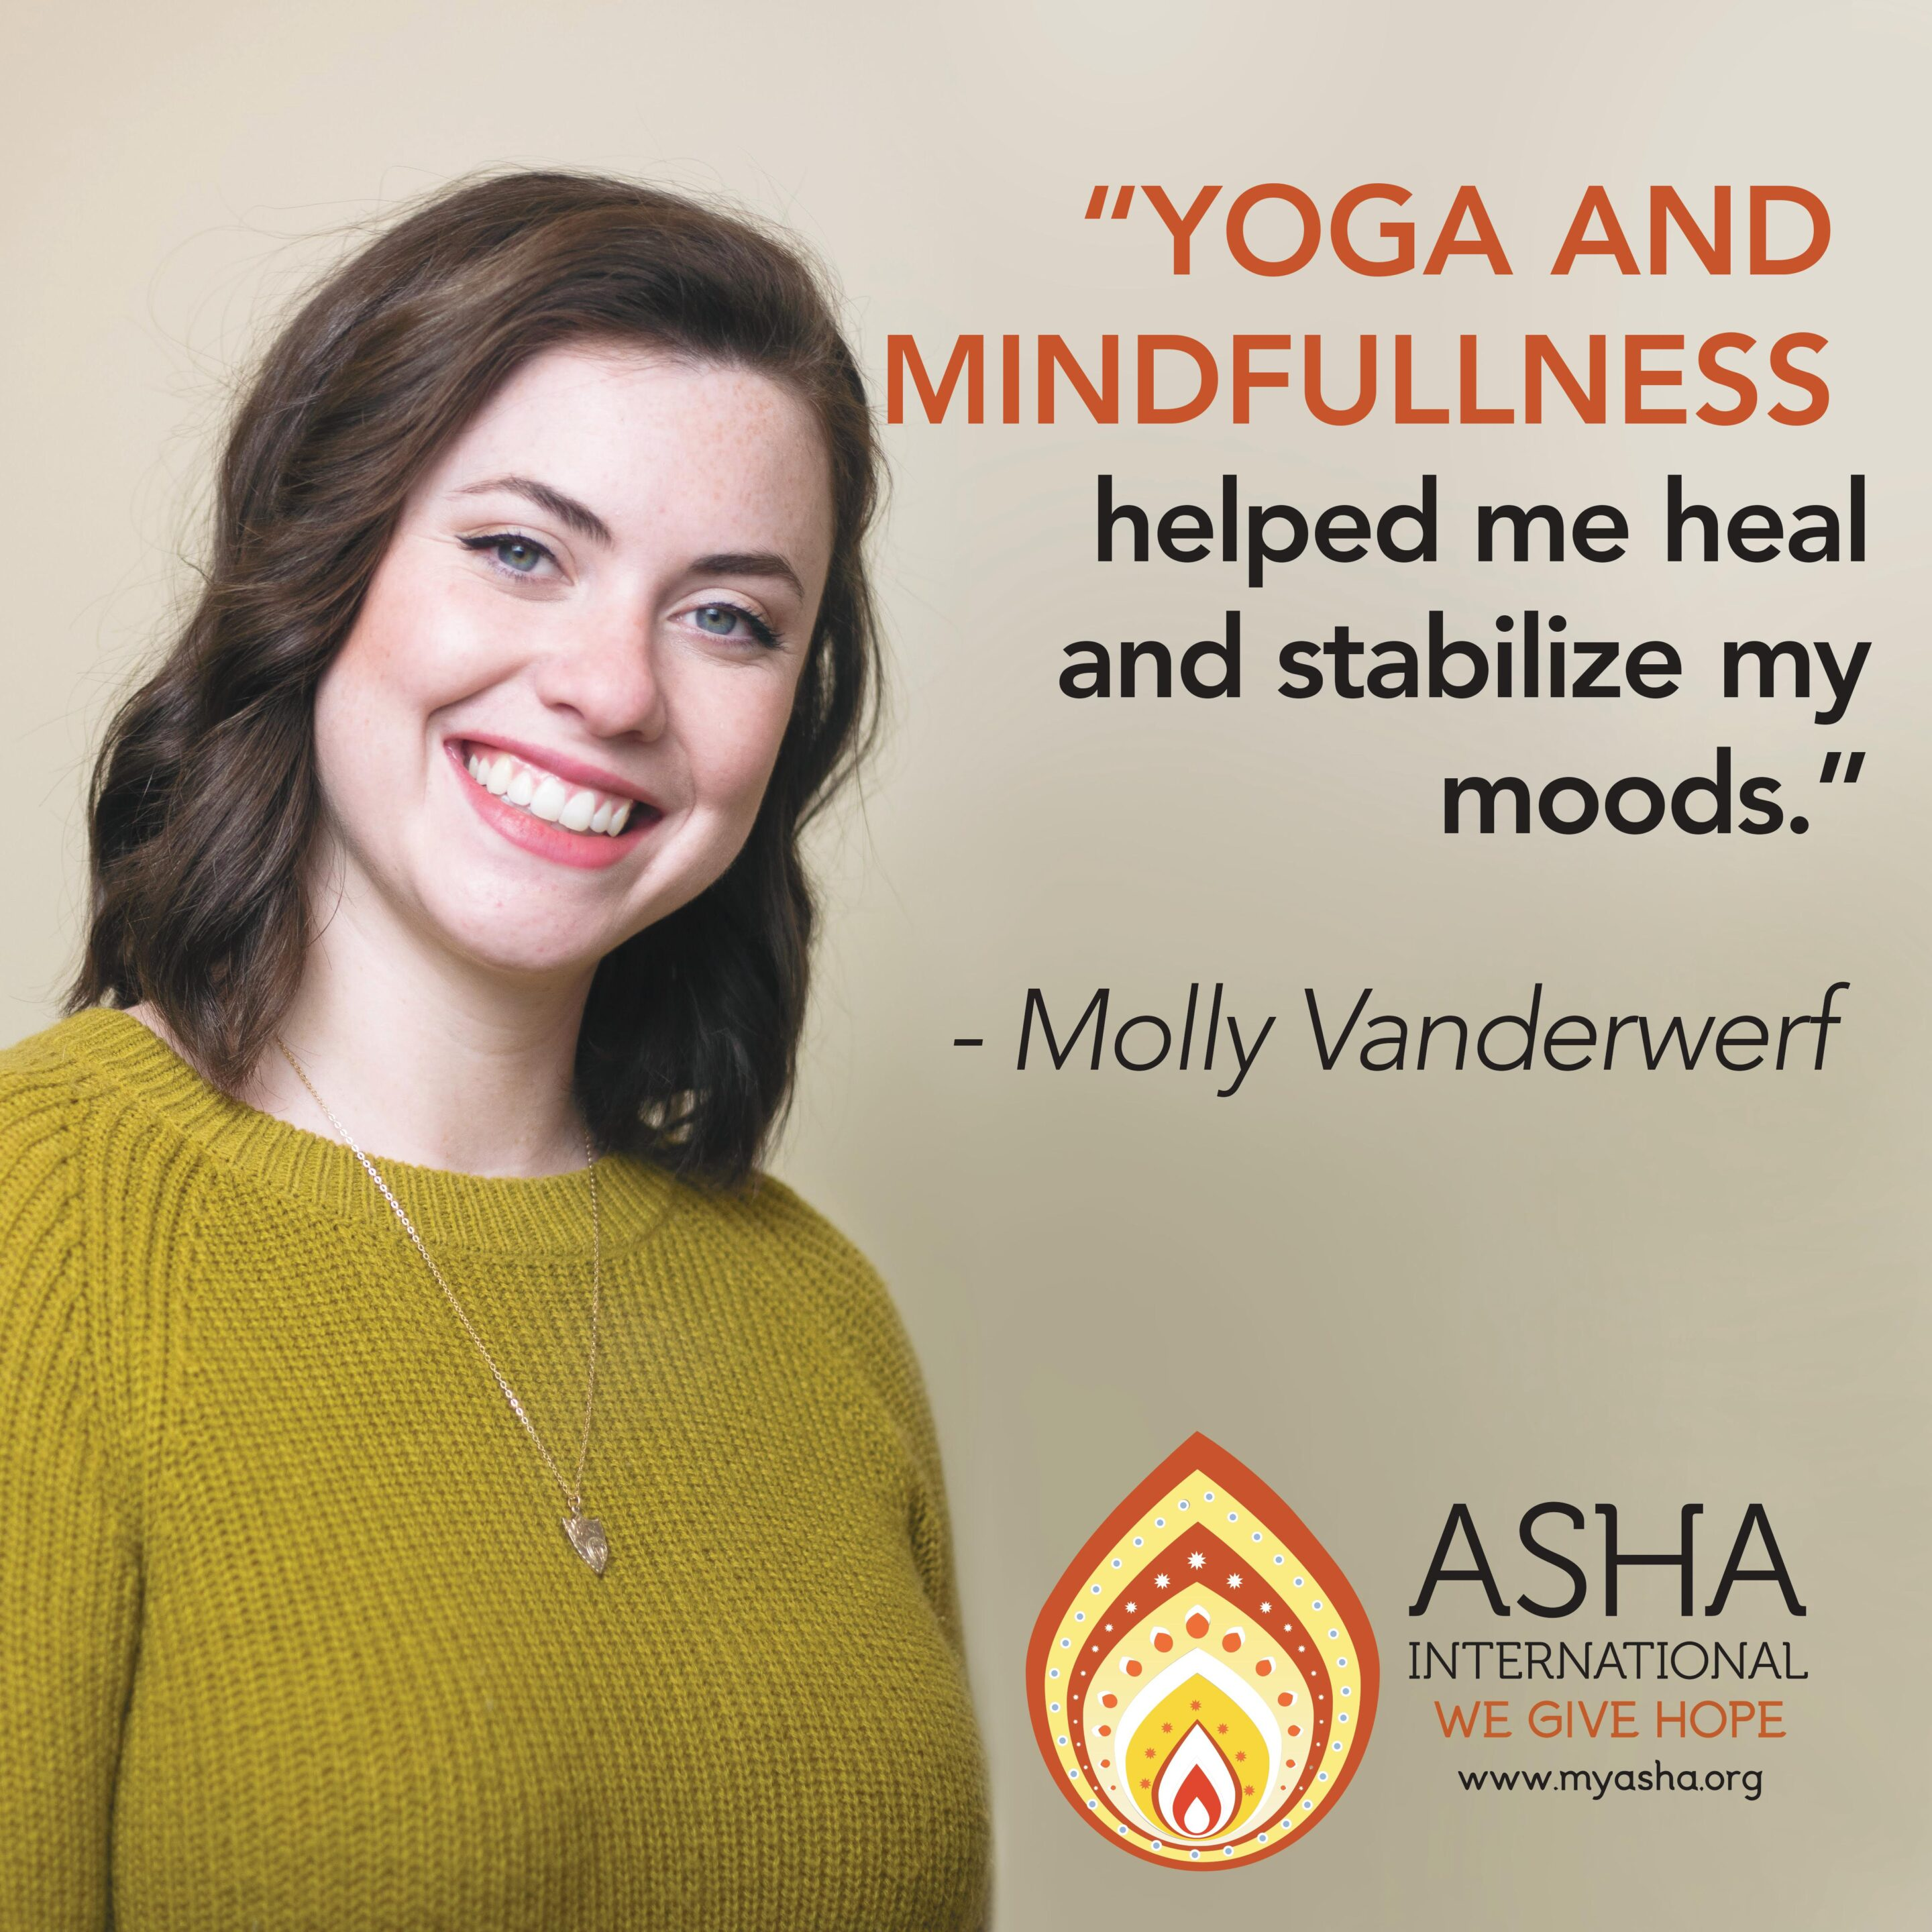 Yoga and mindfulness helped me heal and stabilize my moods.